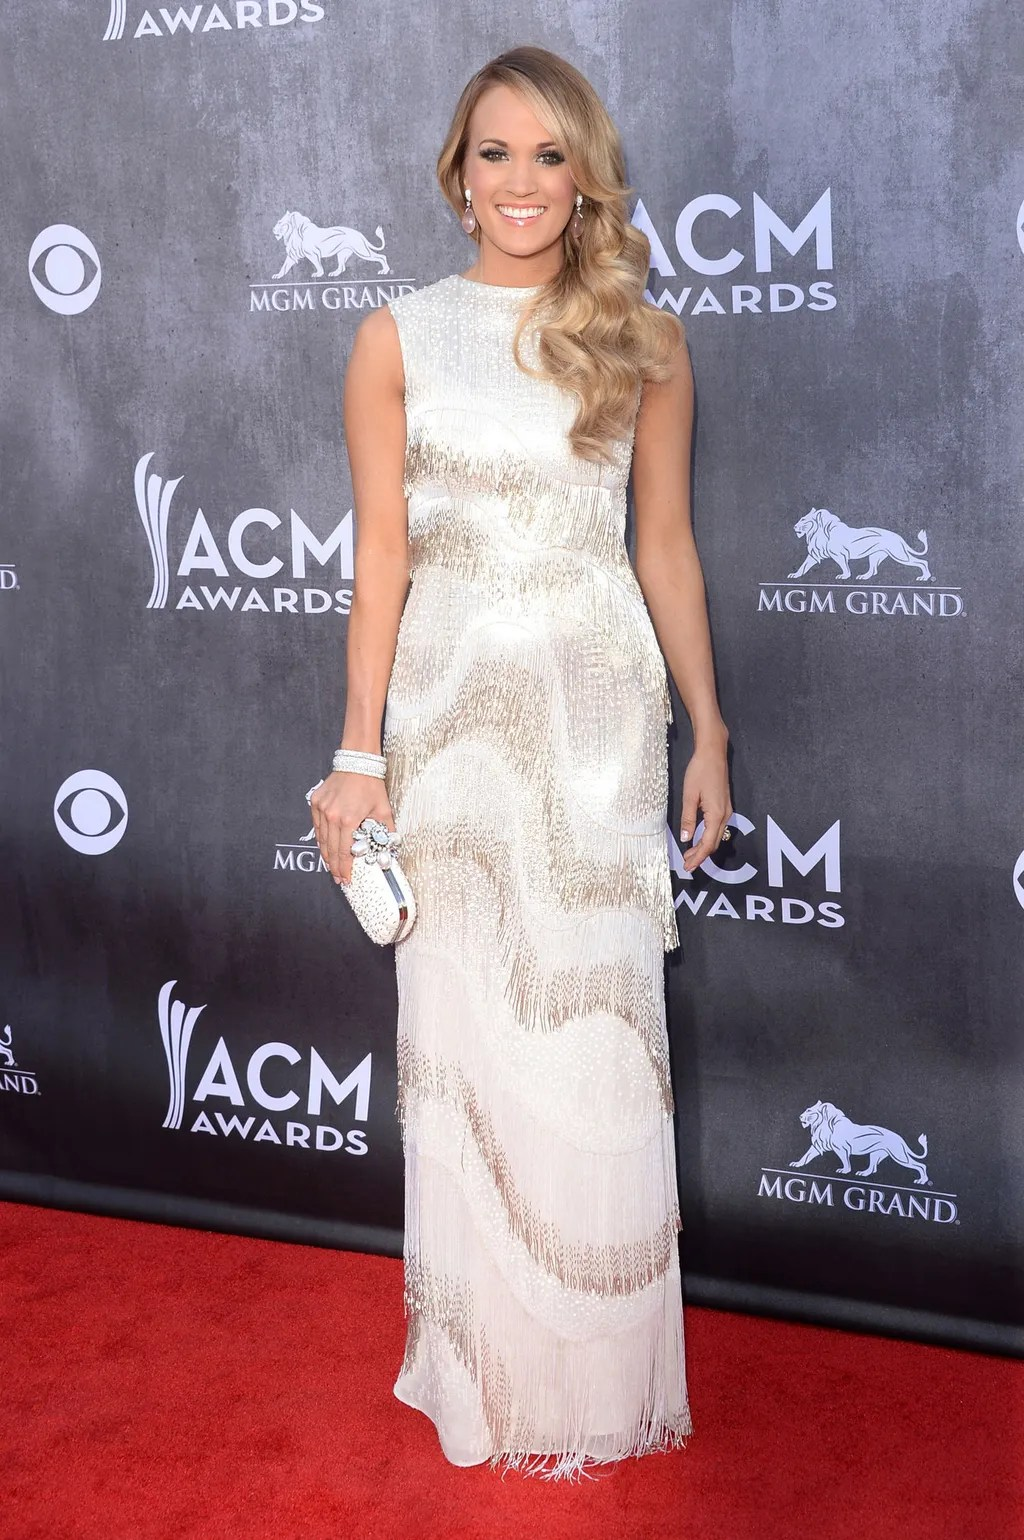 Acm Awards Red Carpet Best Dressed Taylor Swift Carried